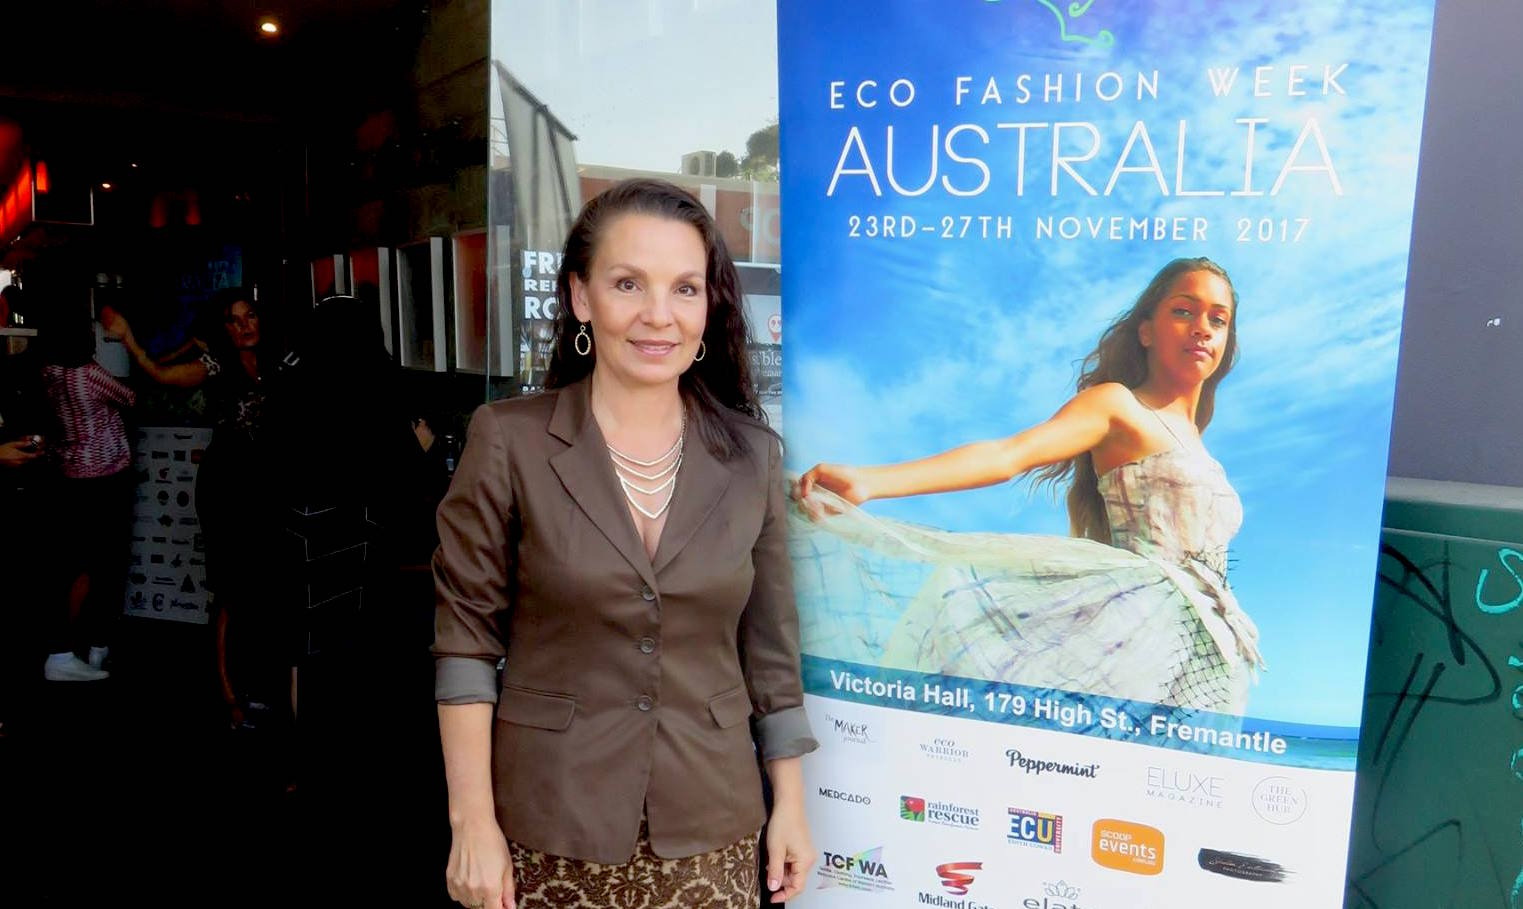 Robbin Whachell during EFWA 2017 in Perth.